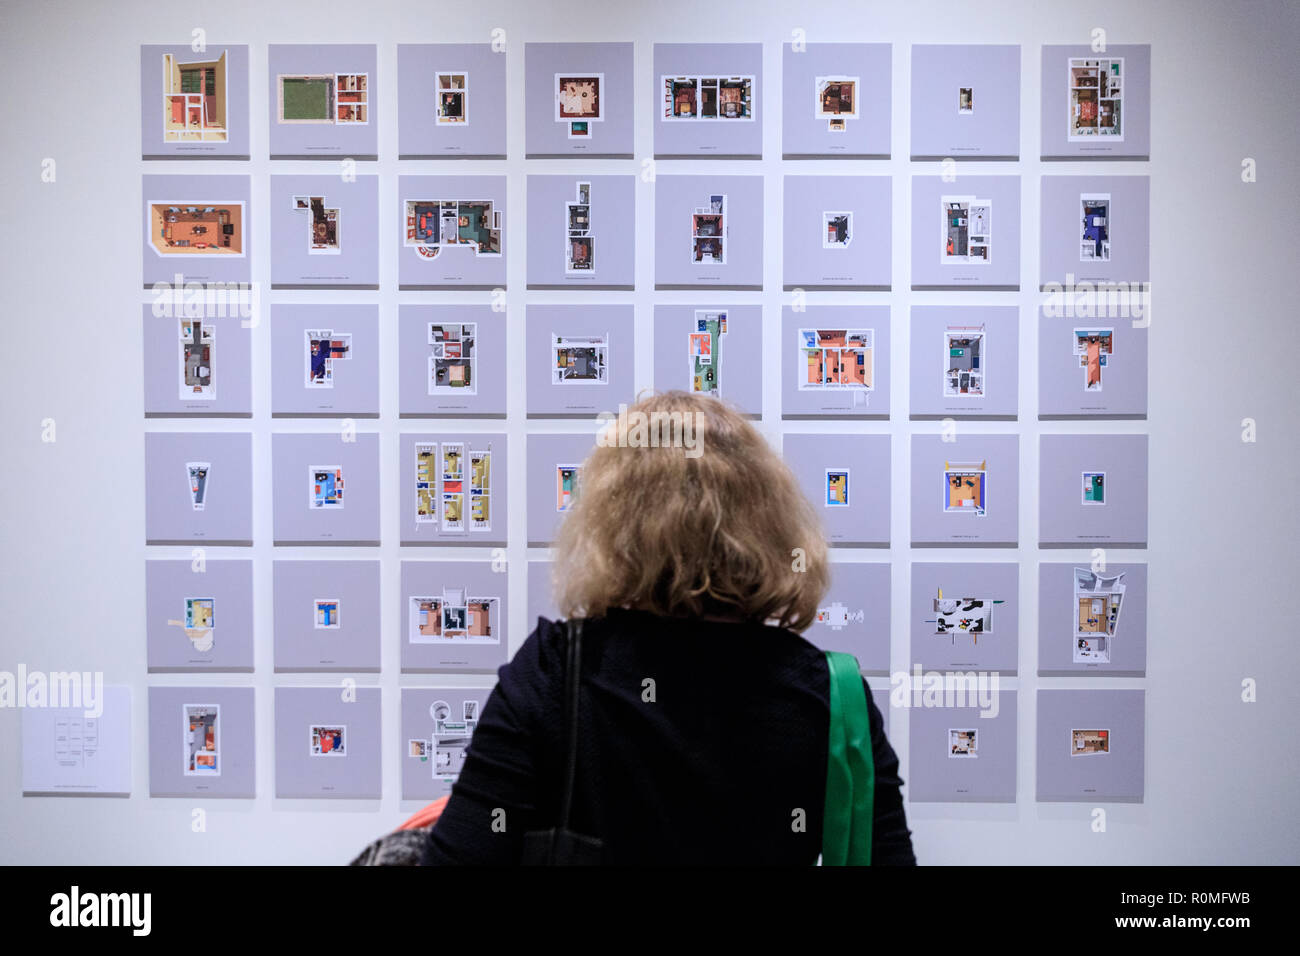 The Design Museum, London, UK, 6th Nov 2018. A visitor looks at the 'Loveless - The Architecture of Minimum Dwelling' exhibit. Bringing together avant-garde speculations with contemporary objects and new commissions, Home Futures explores today's home through the prism of yesterday's imagination. The exhibition will run from 7 Nov 2018 to 24 Mar 2019. Credit: Imageplotter News and Sports/Alamy Live News - Stock Image